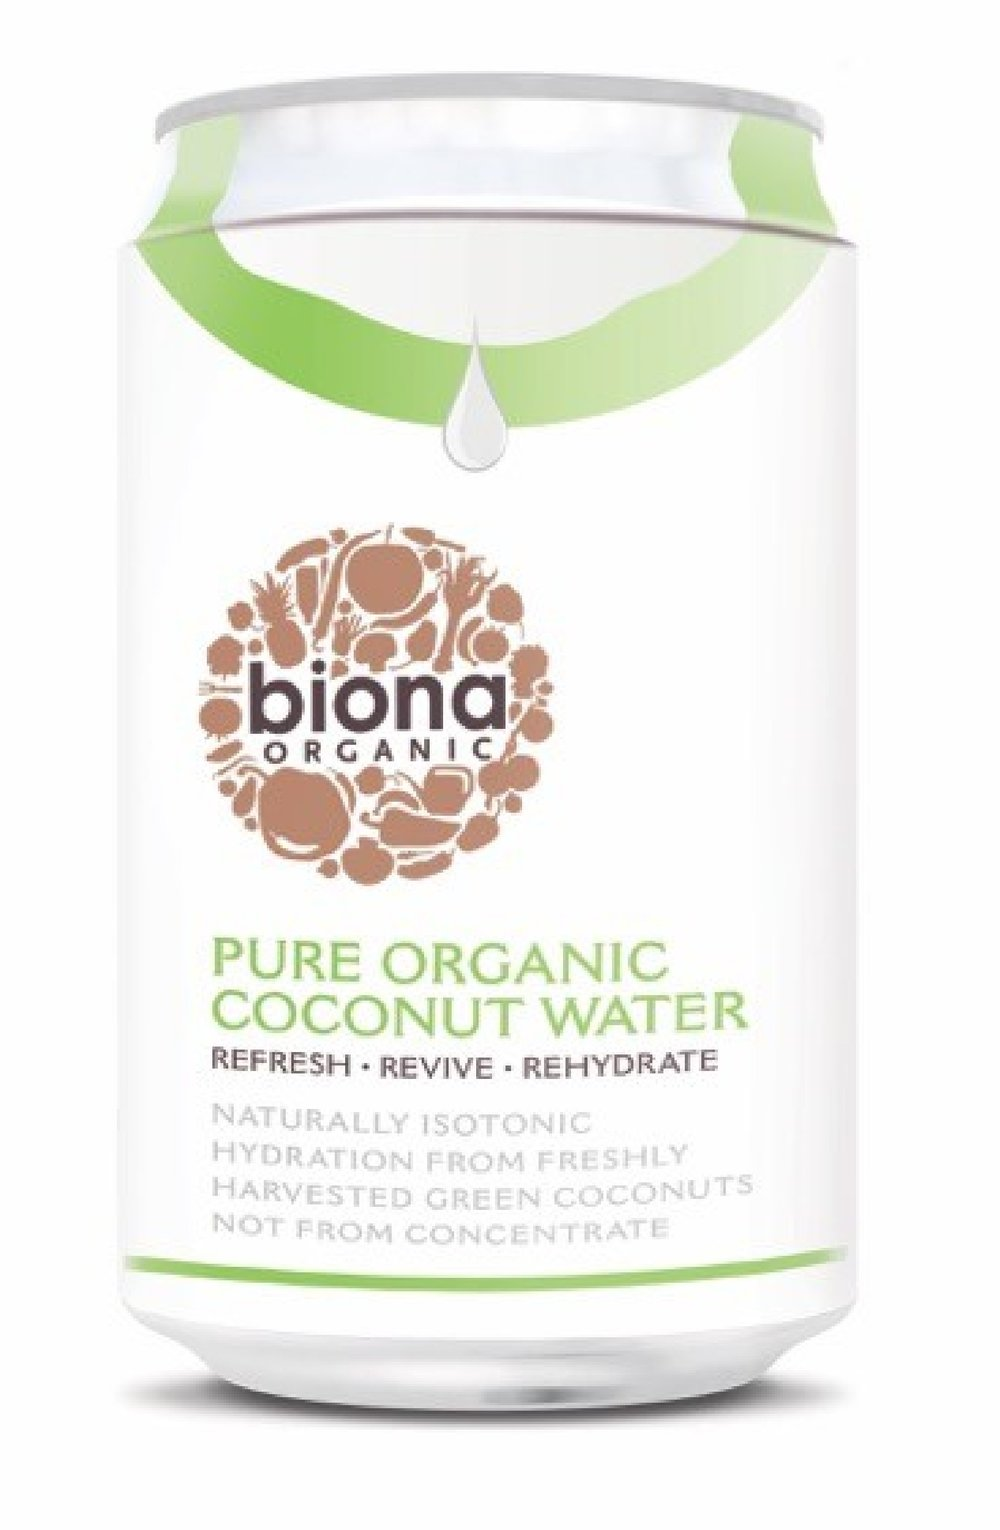 Biona coconut water white can dummy.JPG